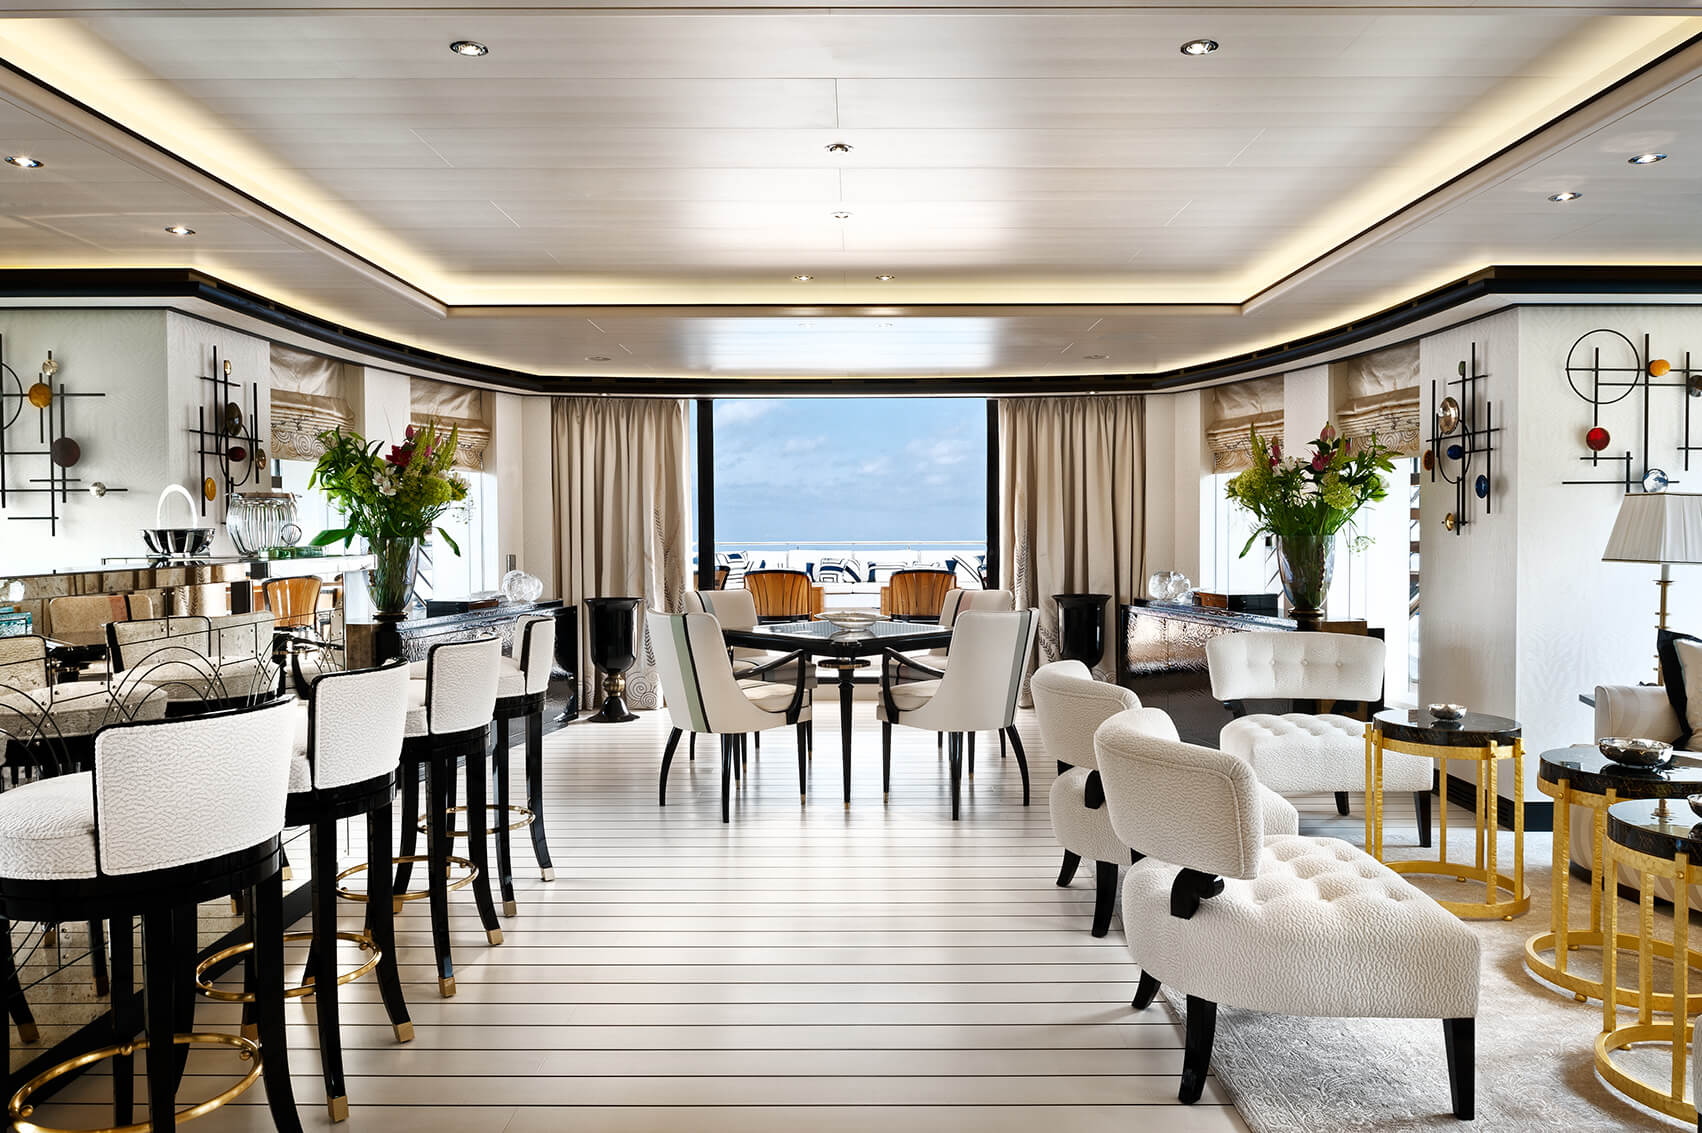 Main Saloon Bar Area Looking Out On The Aft Deck